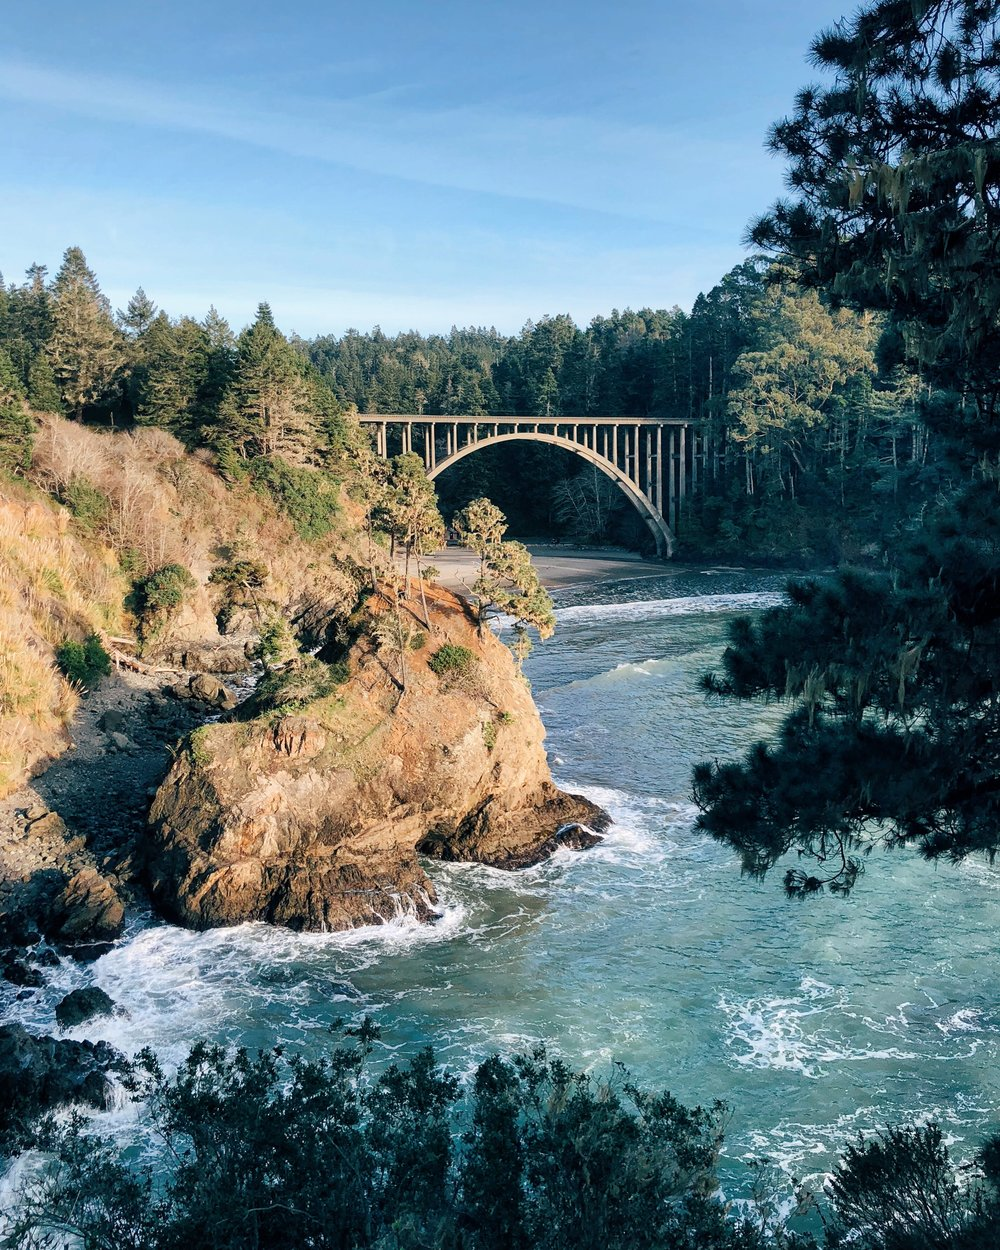 the-curiosity-project-blog-mendocino-road-trip-with-kids-9.jpg